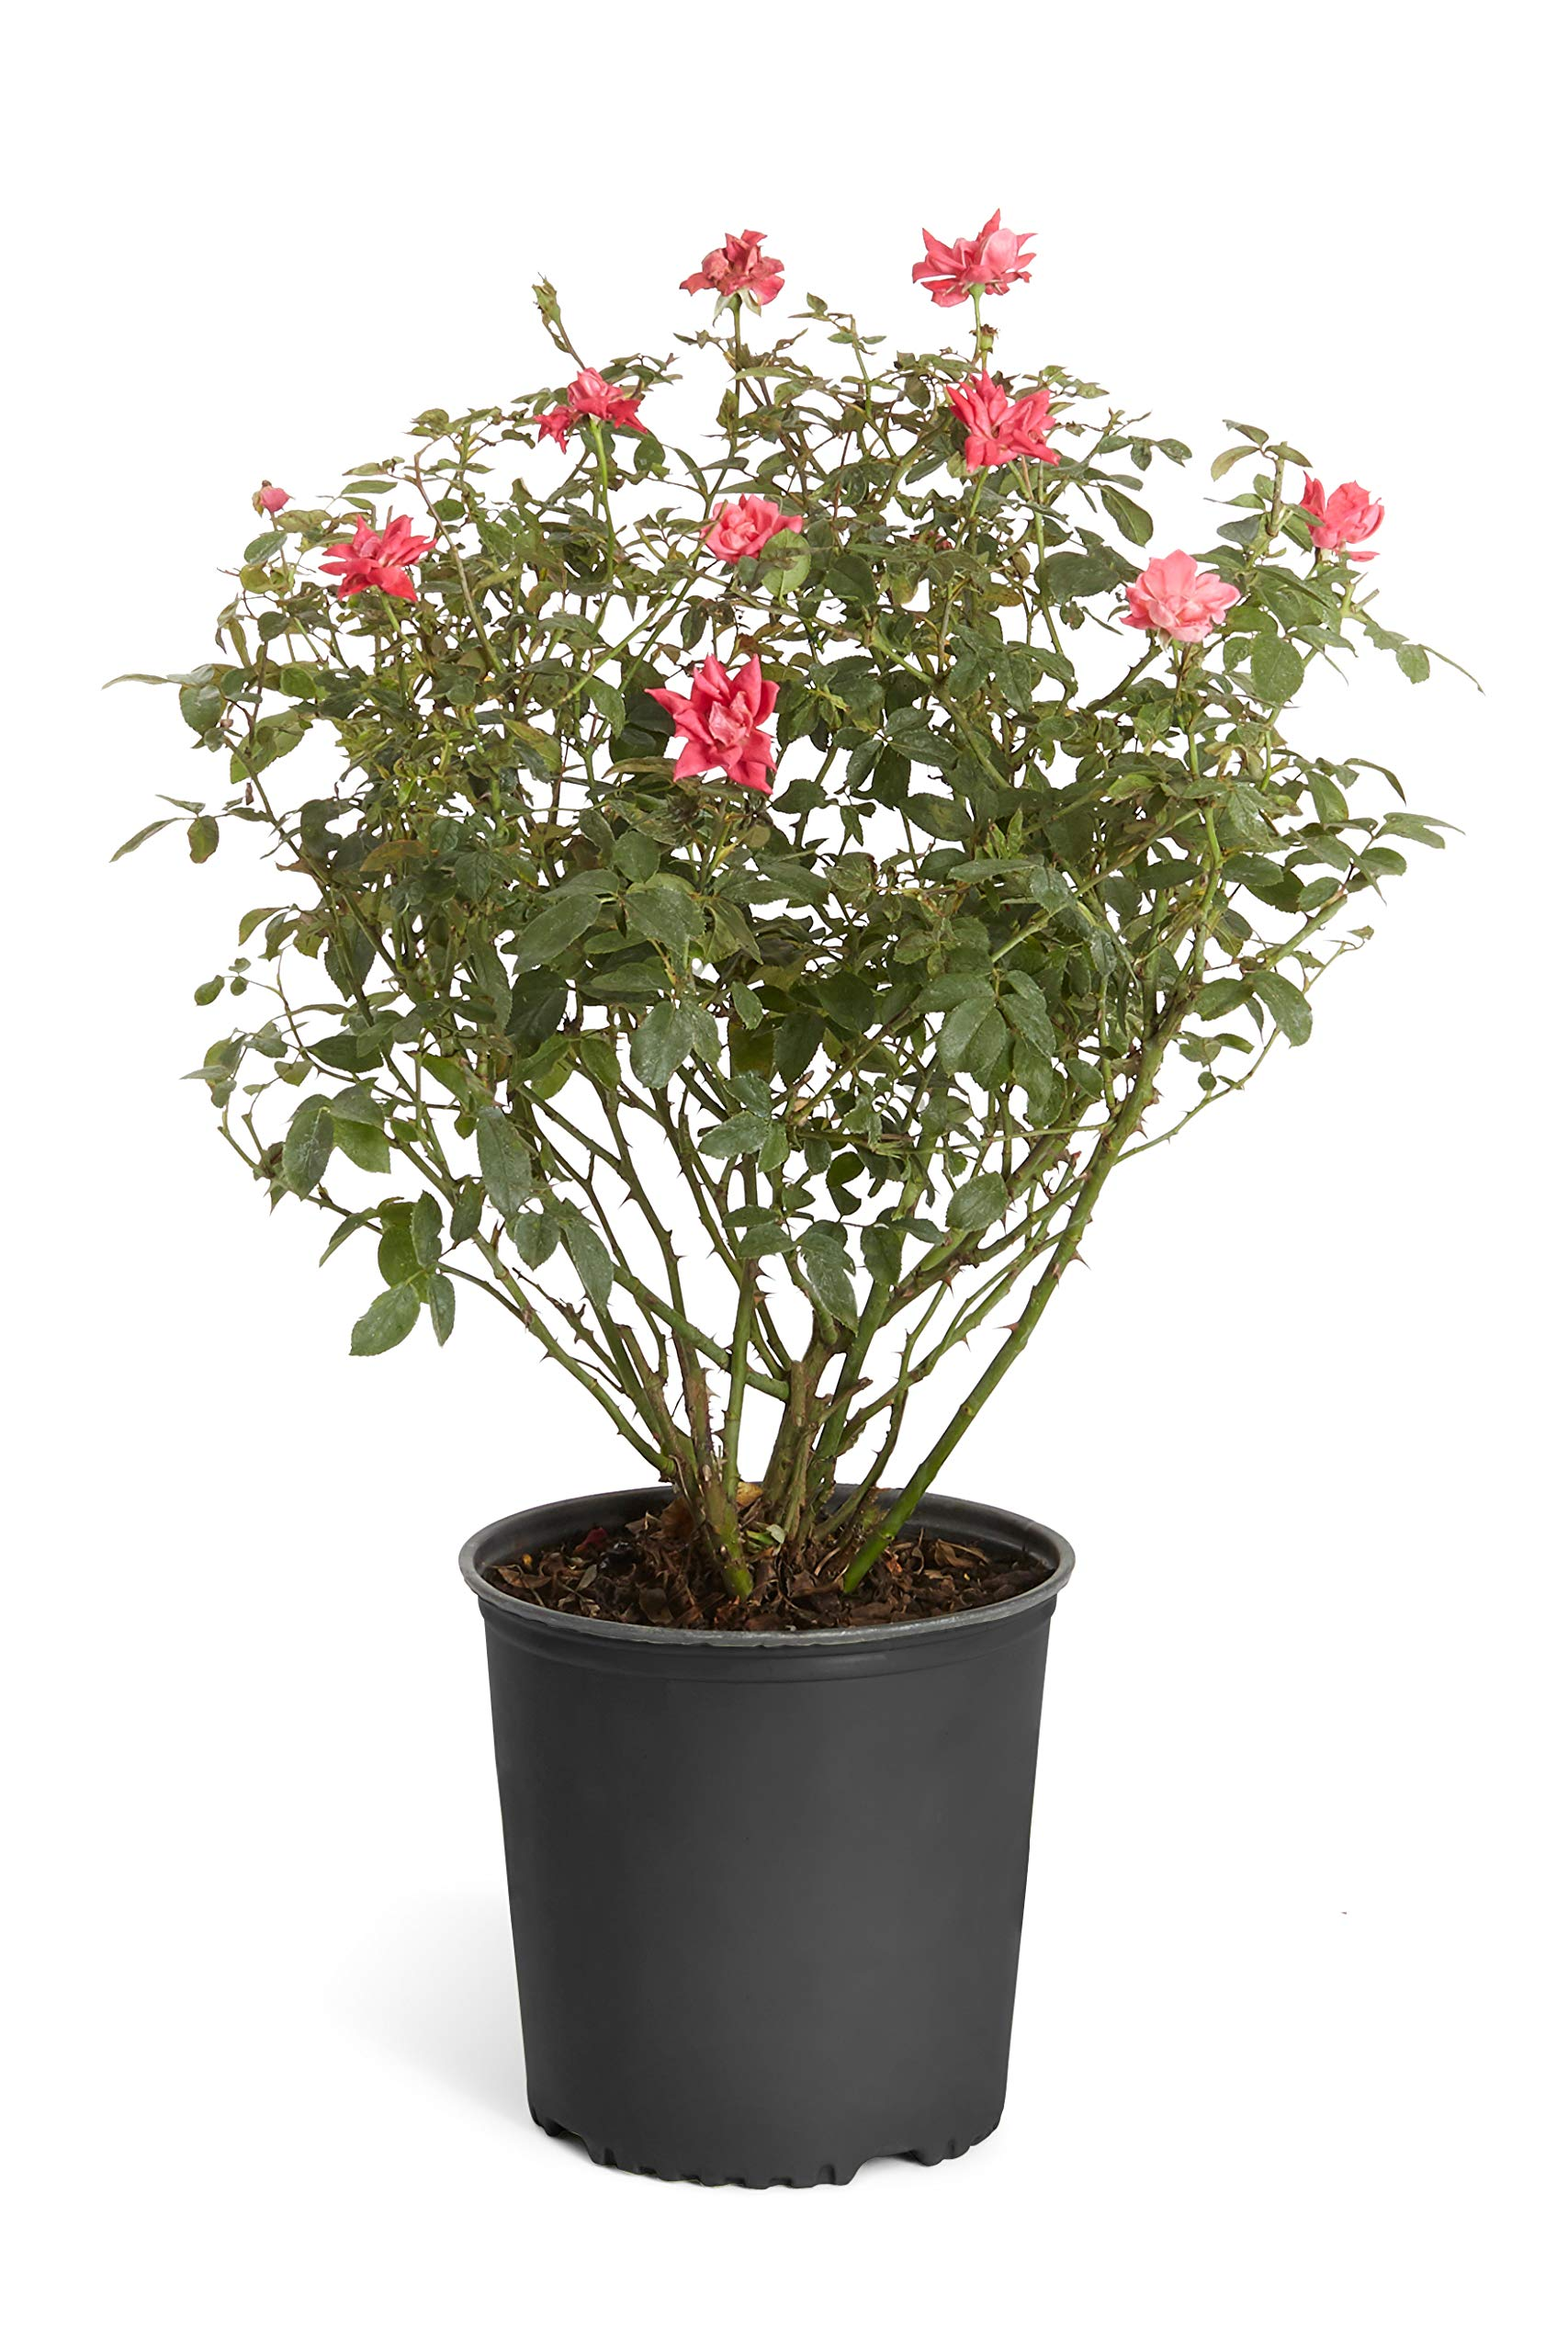 Double Knock Out Rose Bush- Large, Developed Plants for Instant Blooms- Not Tiny Quarts, Seedlings, or Seeds. Enjoy Blooms The First Year with These Large Shrubs with Double-Red Blooms - 2 Gallon